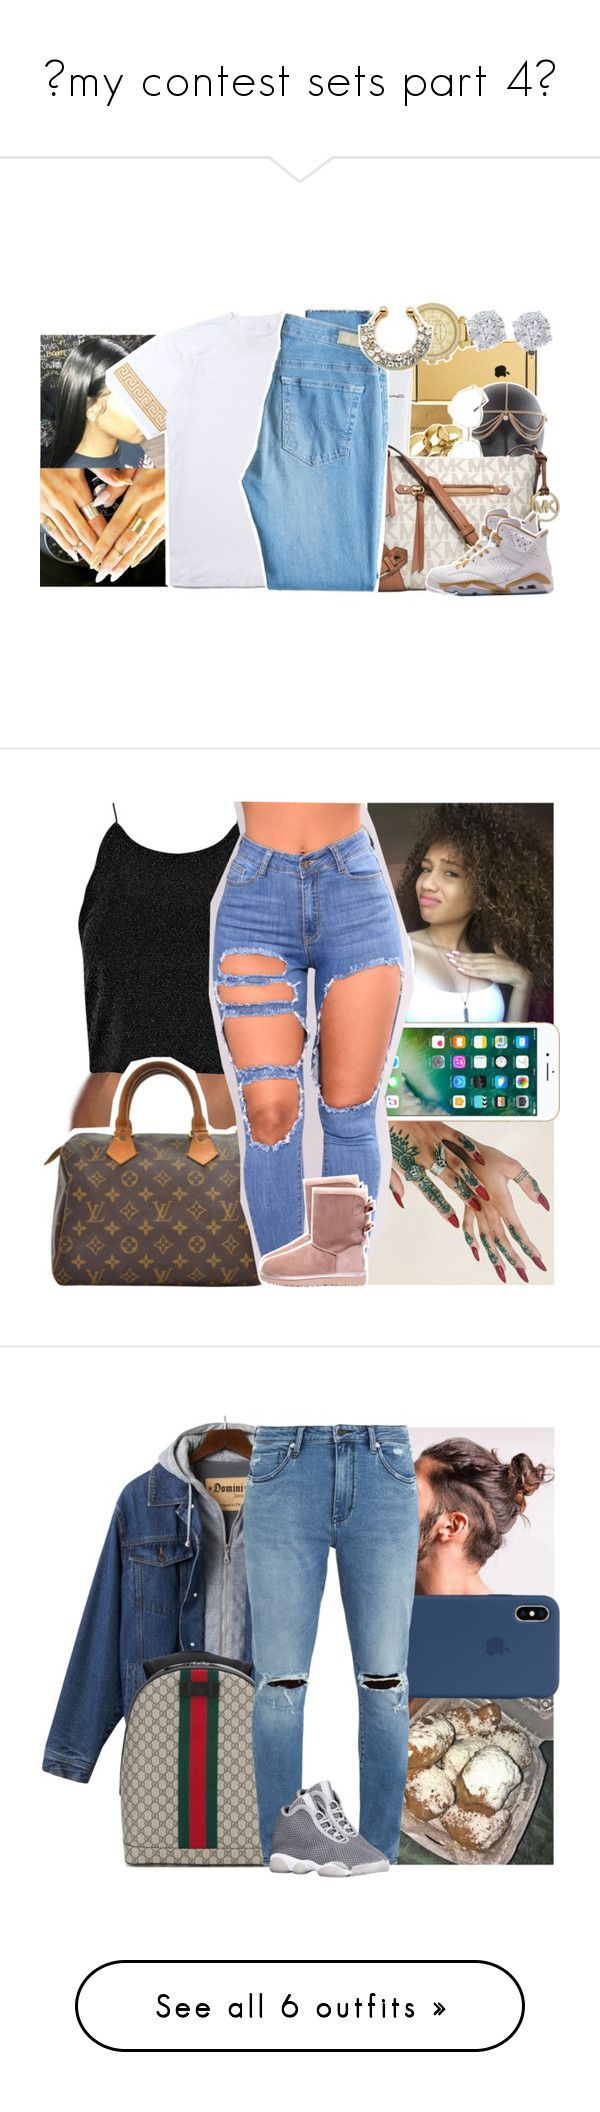 """""""💋my contest sets part 4💋"""" by danny-baby-xoxo ❤ liked on Polyvore featuring Dogeared, Goldgenie, Michael Kors, MAC Cosmetics, AG Adriano Goldschmied, Effy Jewelry, Louis Vuitton, UGG, Gucci and Neuw"""